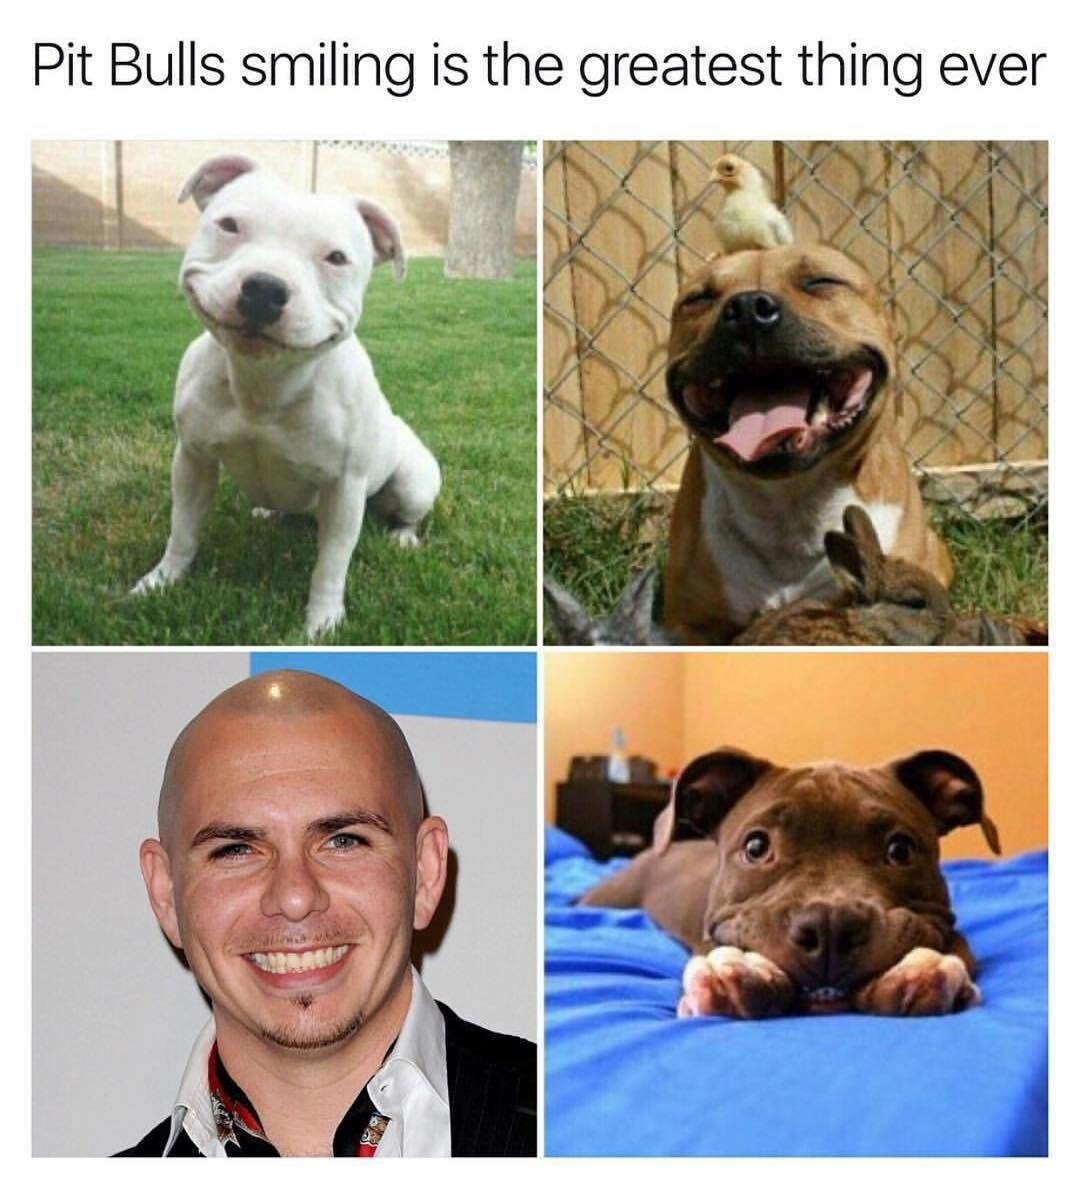 Comment pitbull if you see this - meme